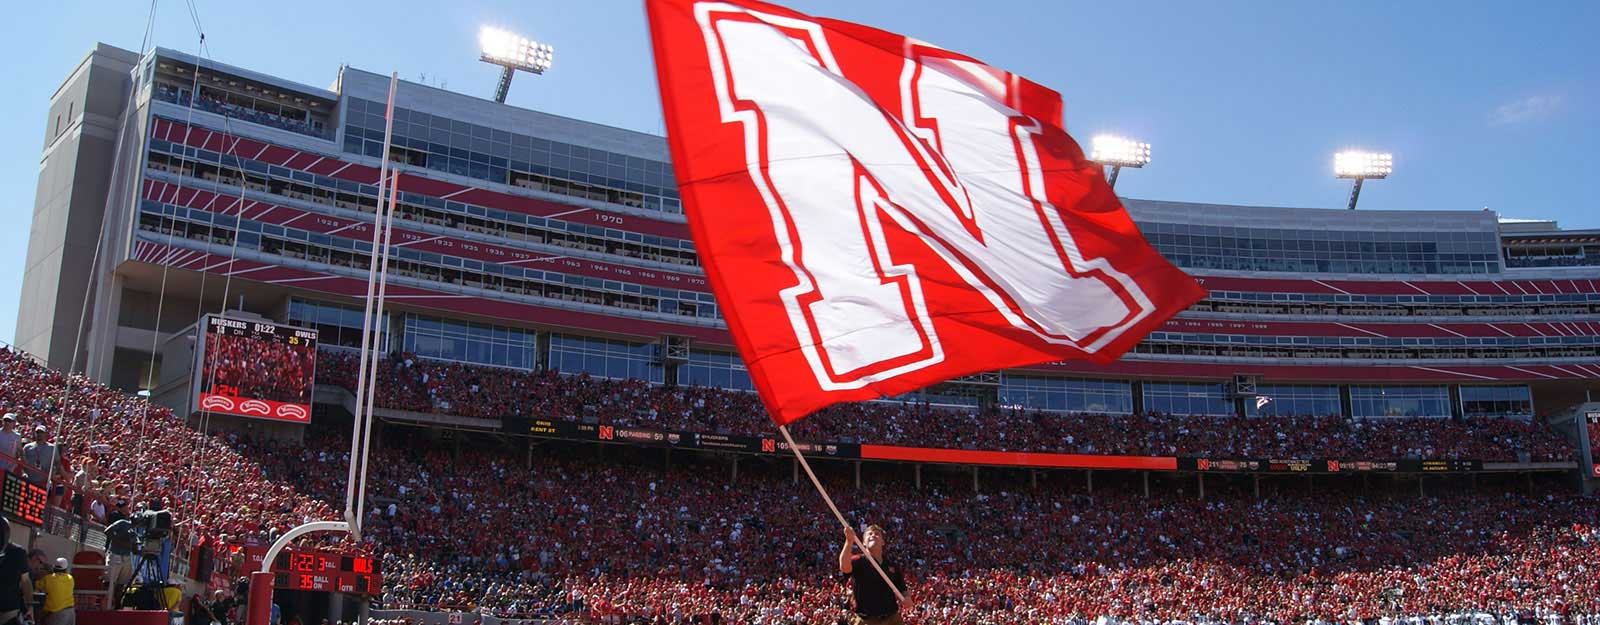 Game day details  Husker football wherever you are! 54dcdbbdd